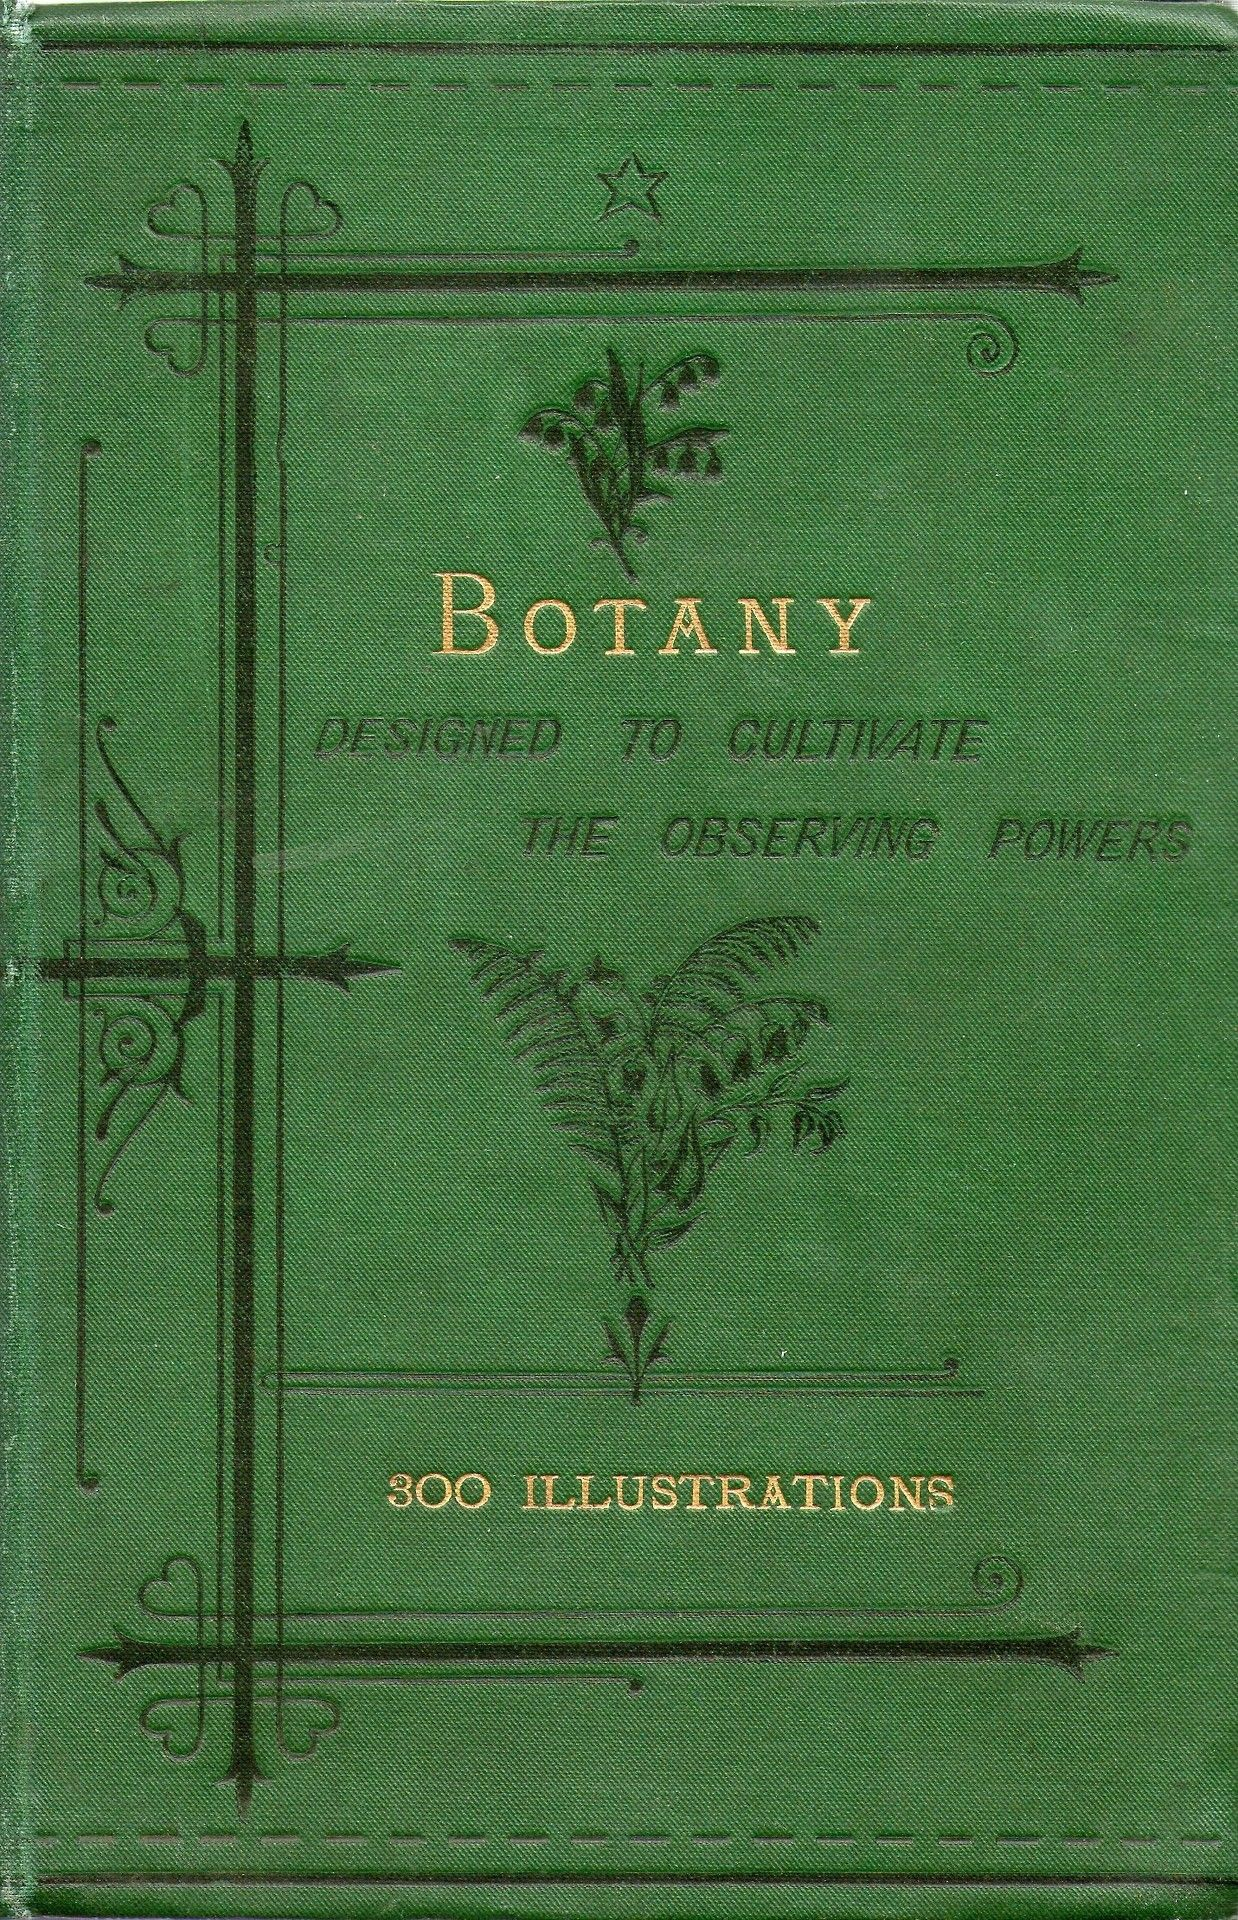 Botany - designed to cultivate the observing powers  London 1888